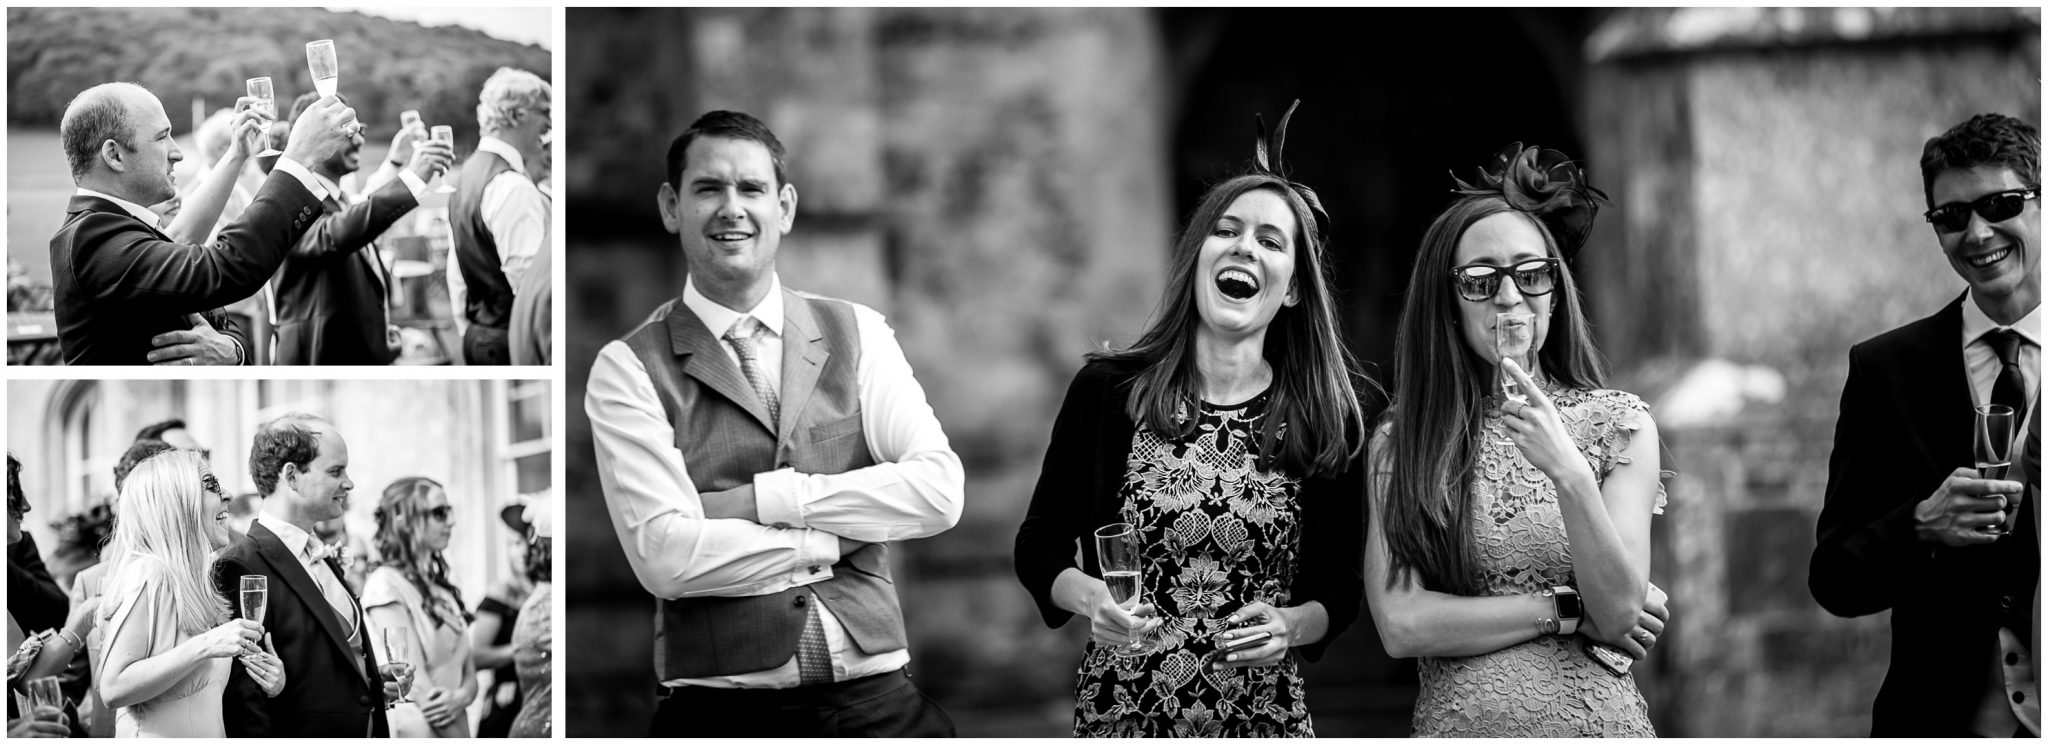 Candid photos of guests watching wedding speeches